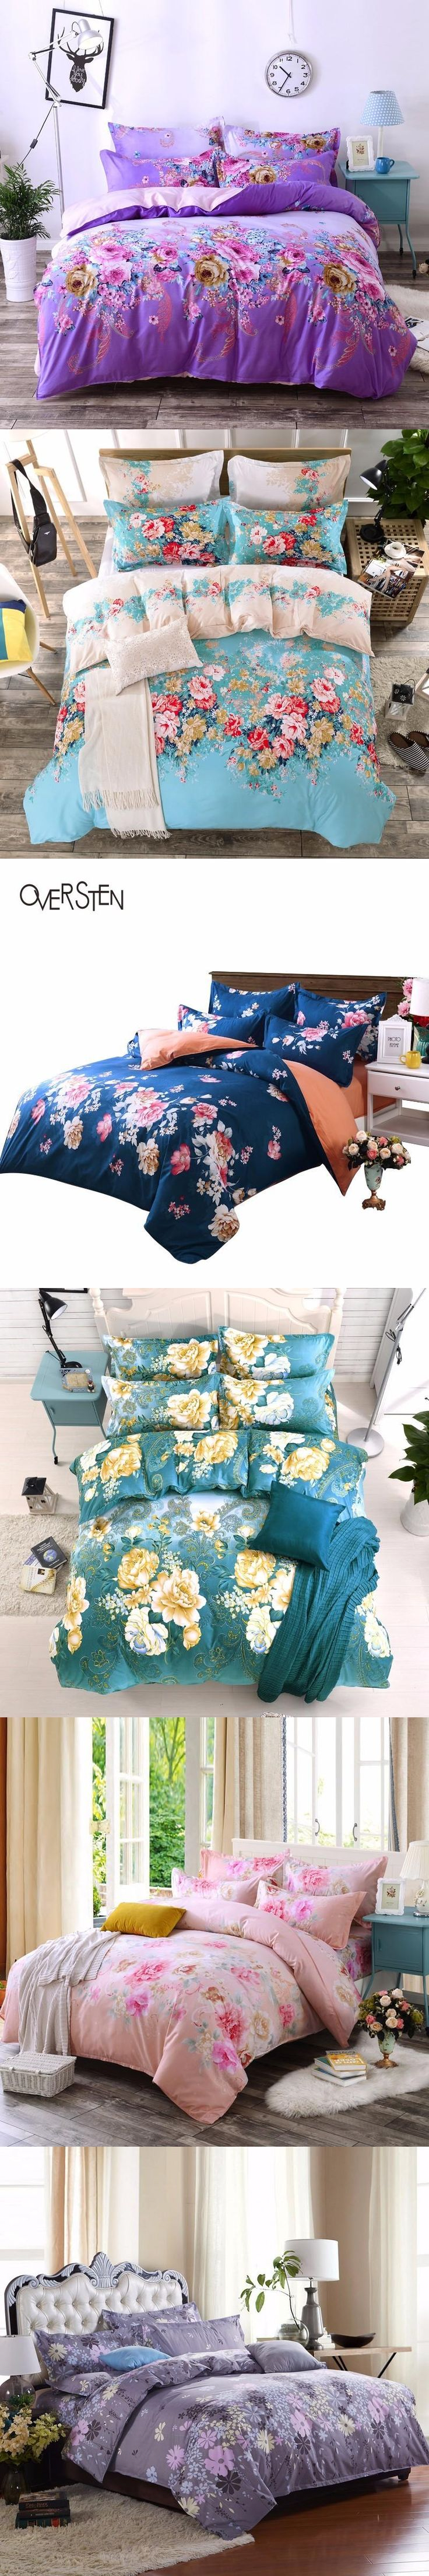 OVERSTEN Palace Style Double Single Bedding Set Twin Queen King Size Duvet Cover Set Floral Pattern Bedding Kit Bed Fabric